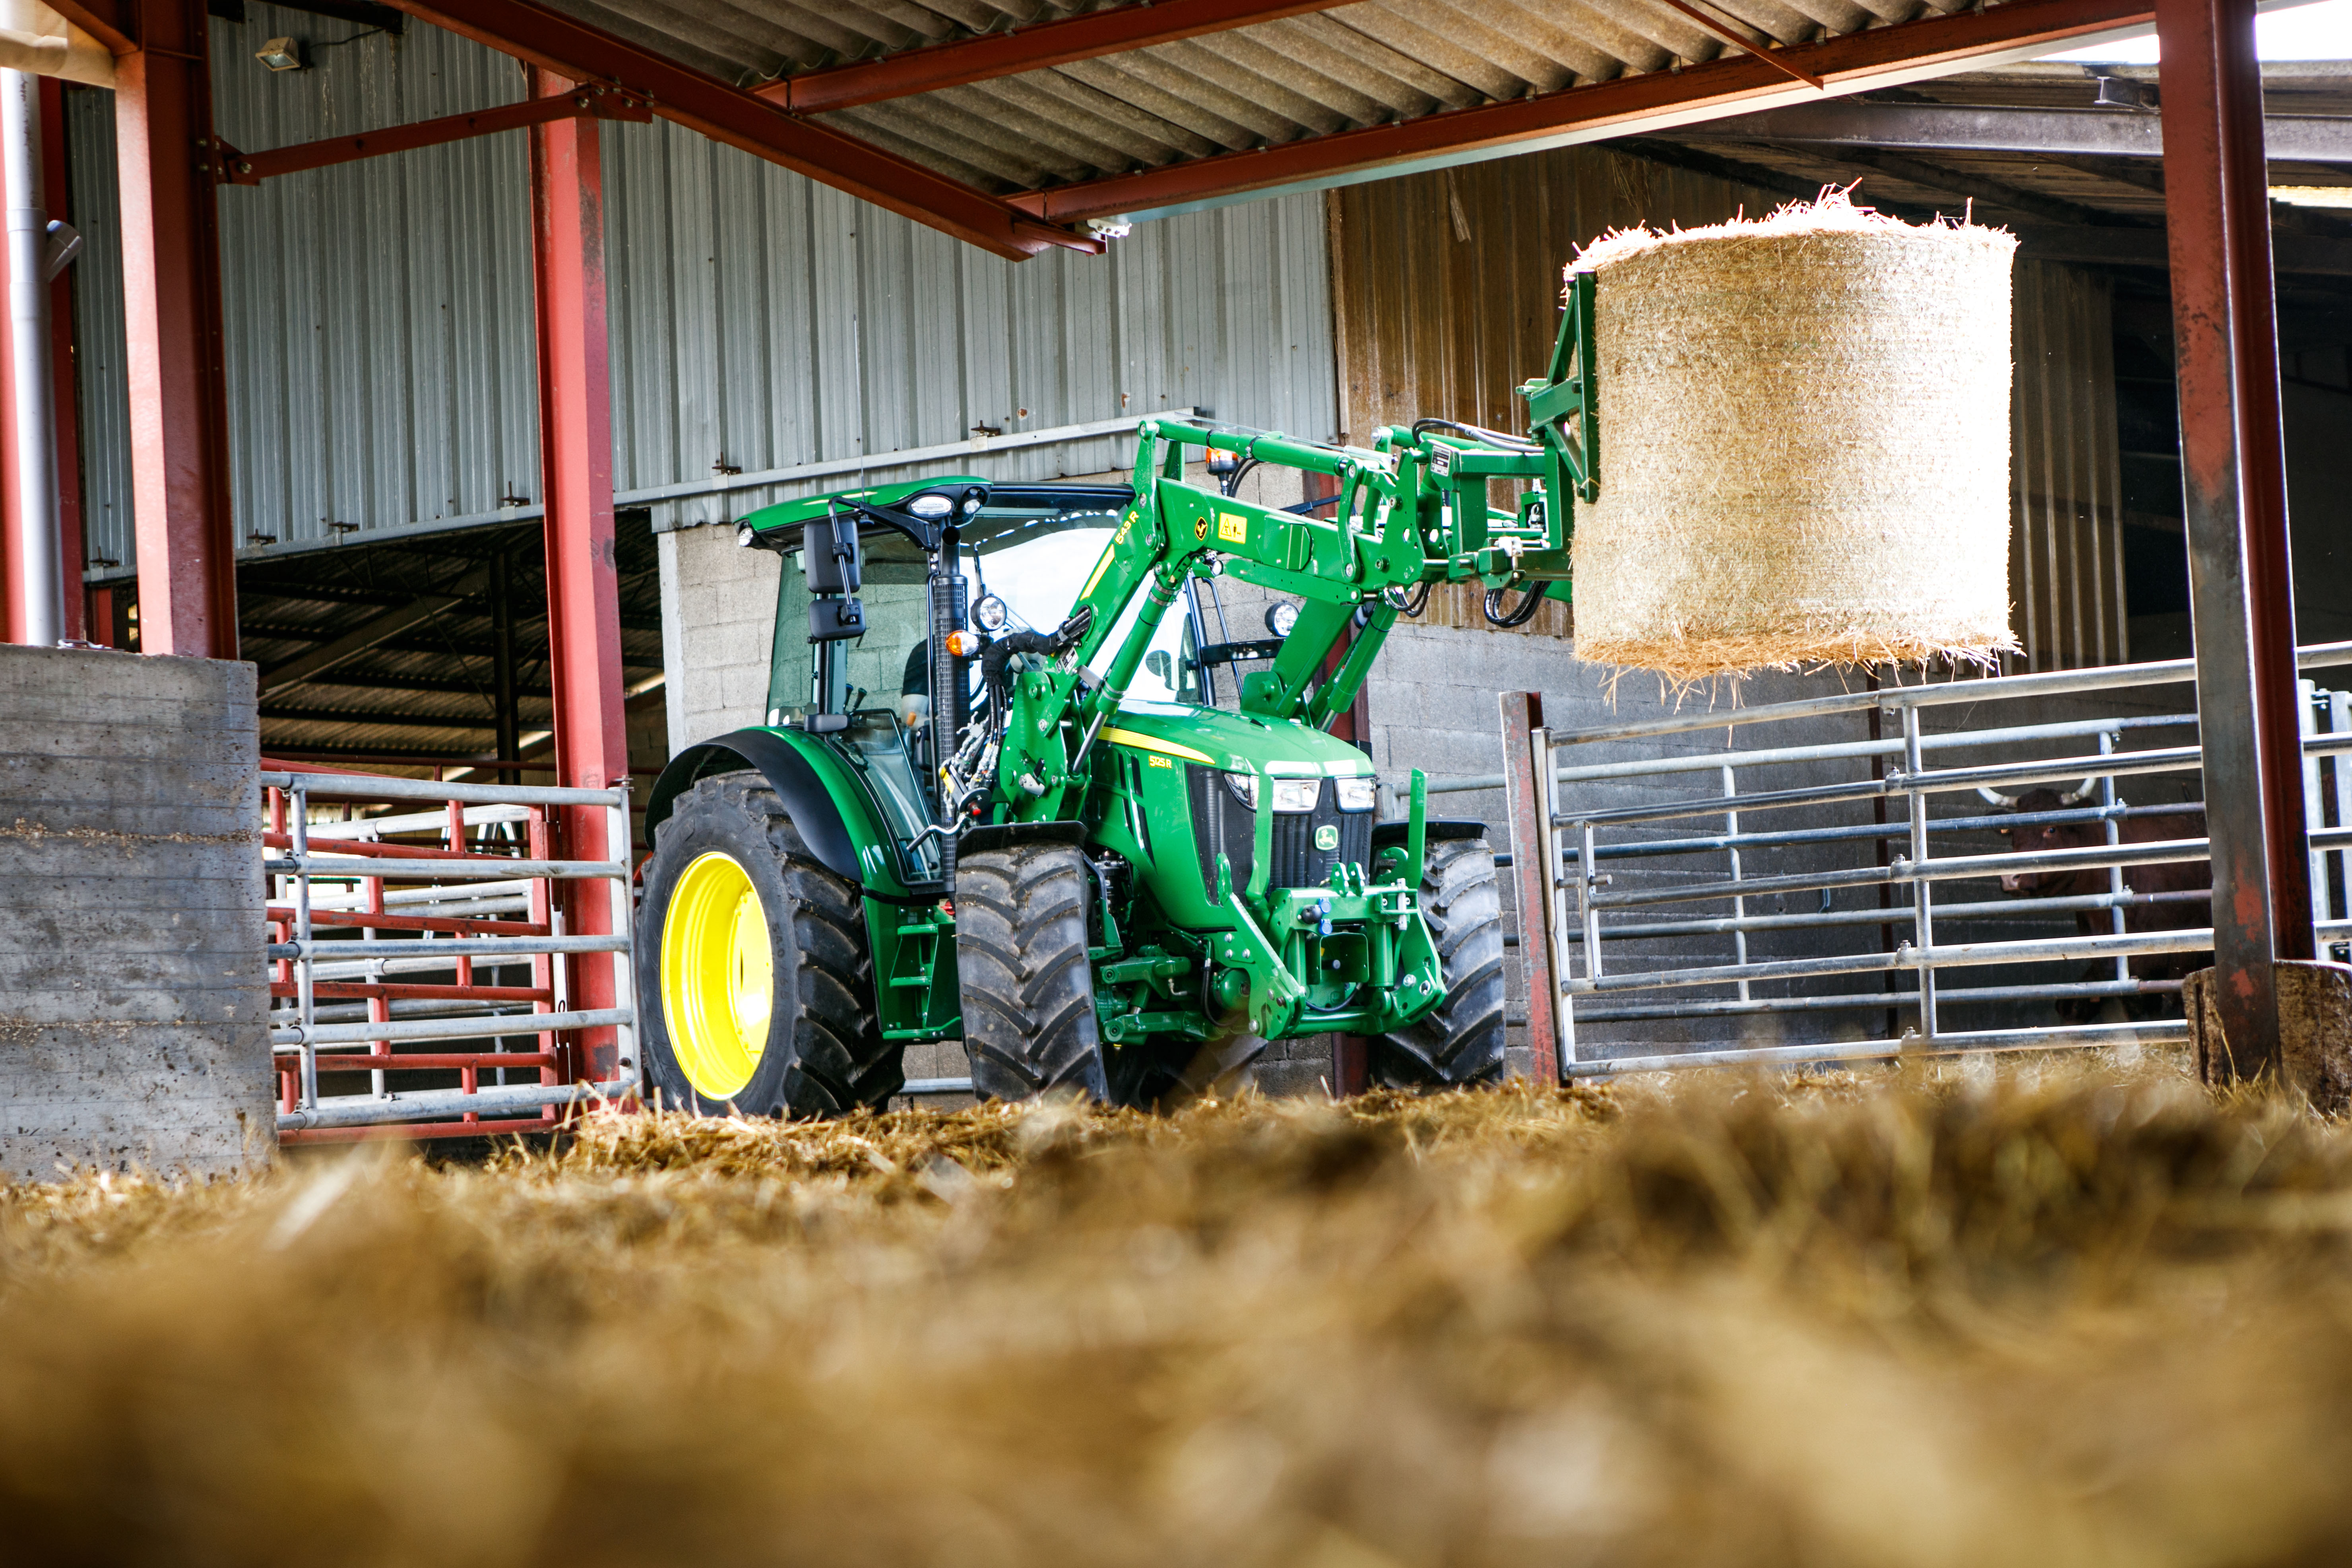 The new John Deere 5125R tractor with 543R front loader.